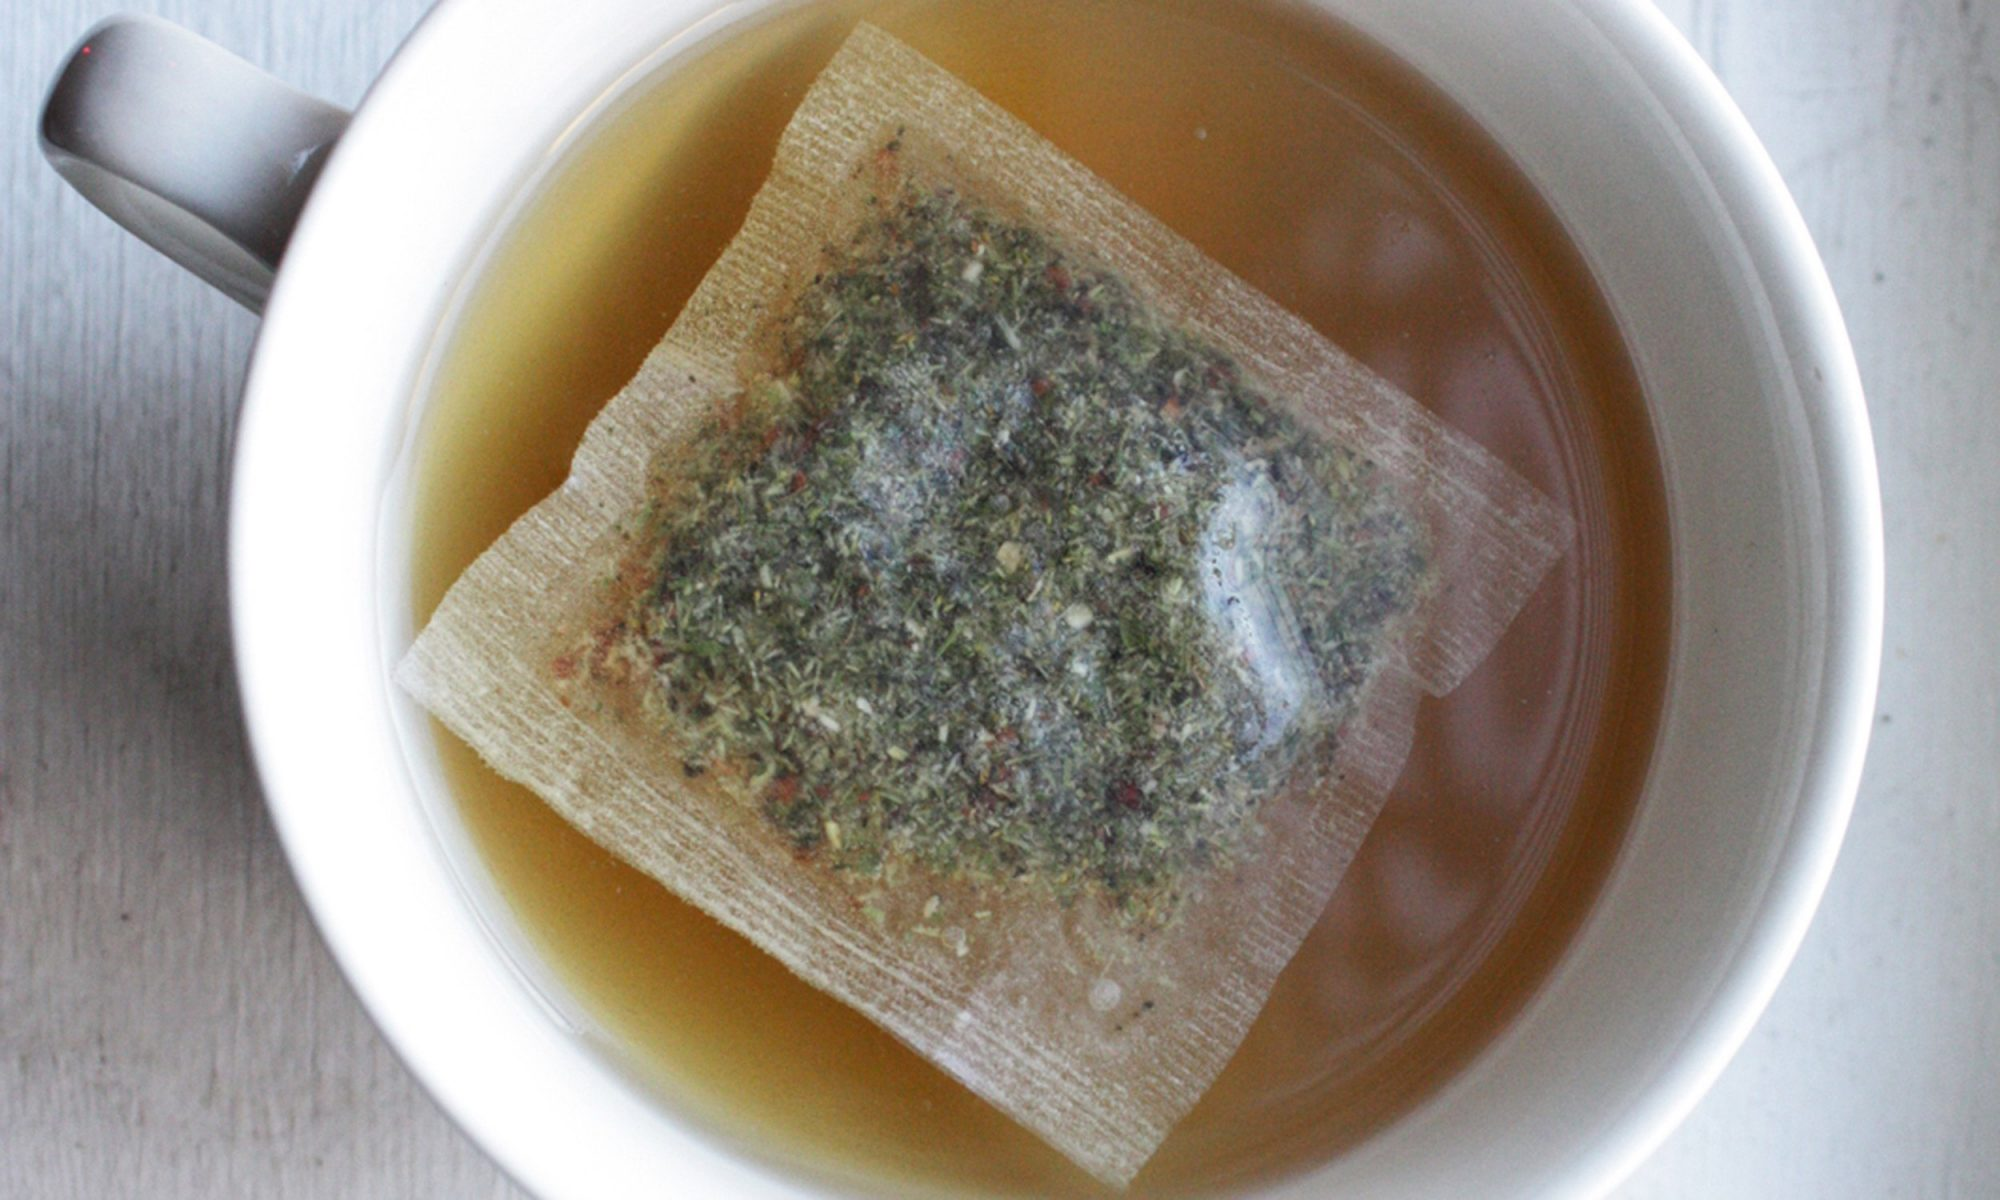 Why Your Tea Tastes Great, According to Science